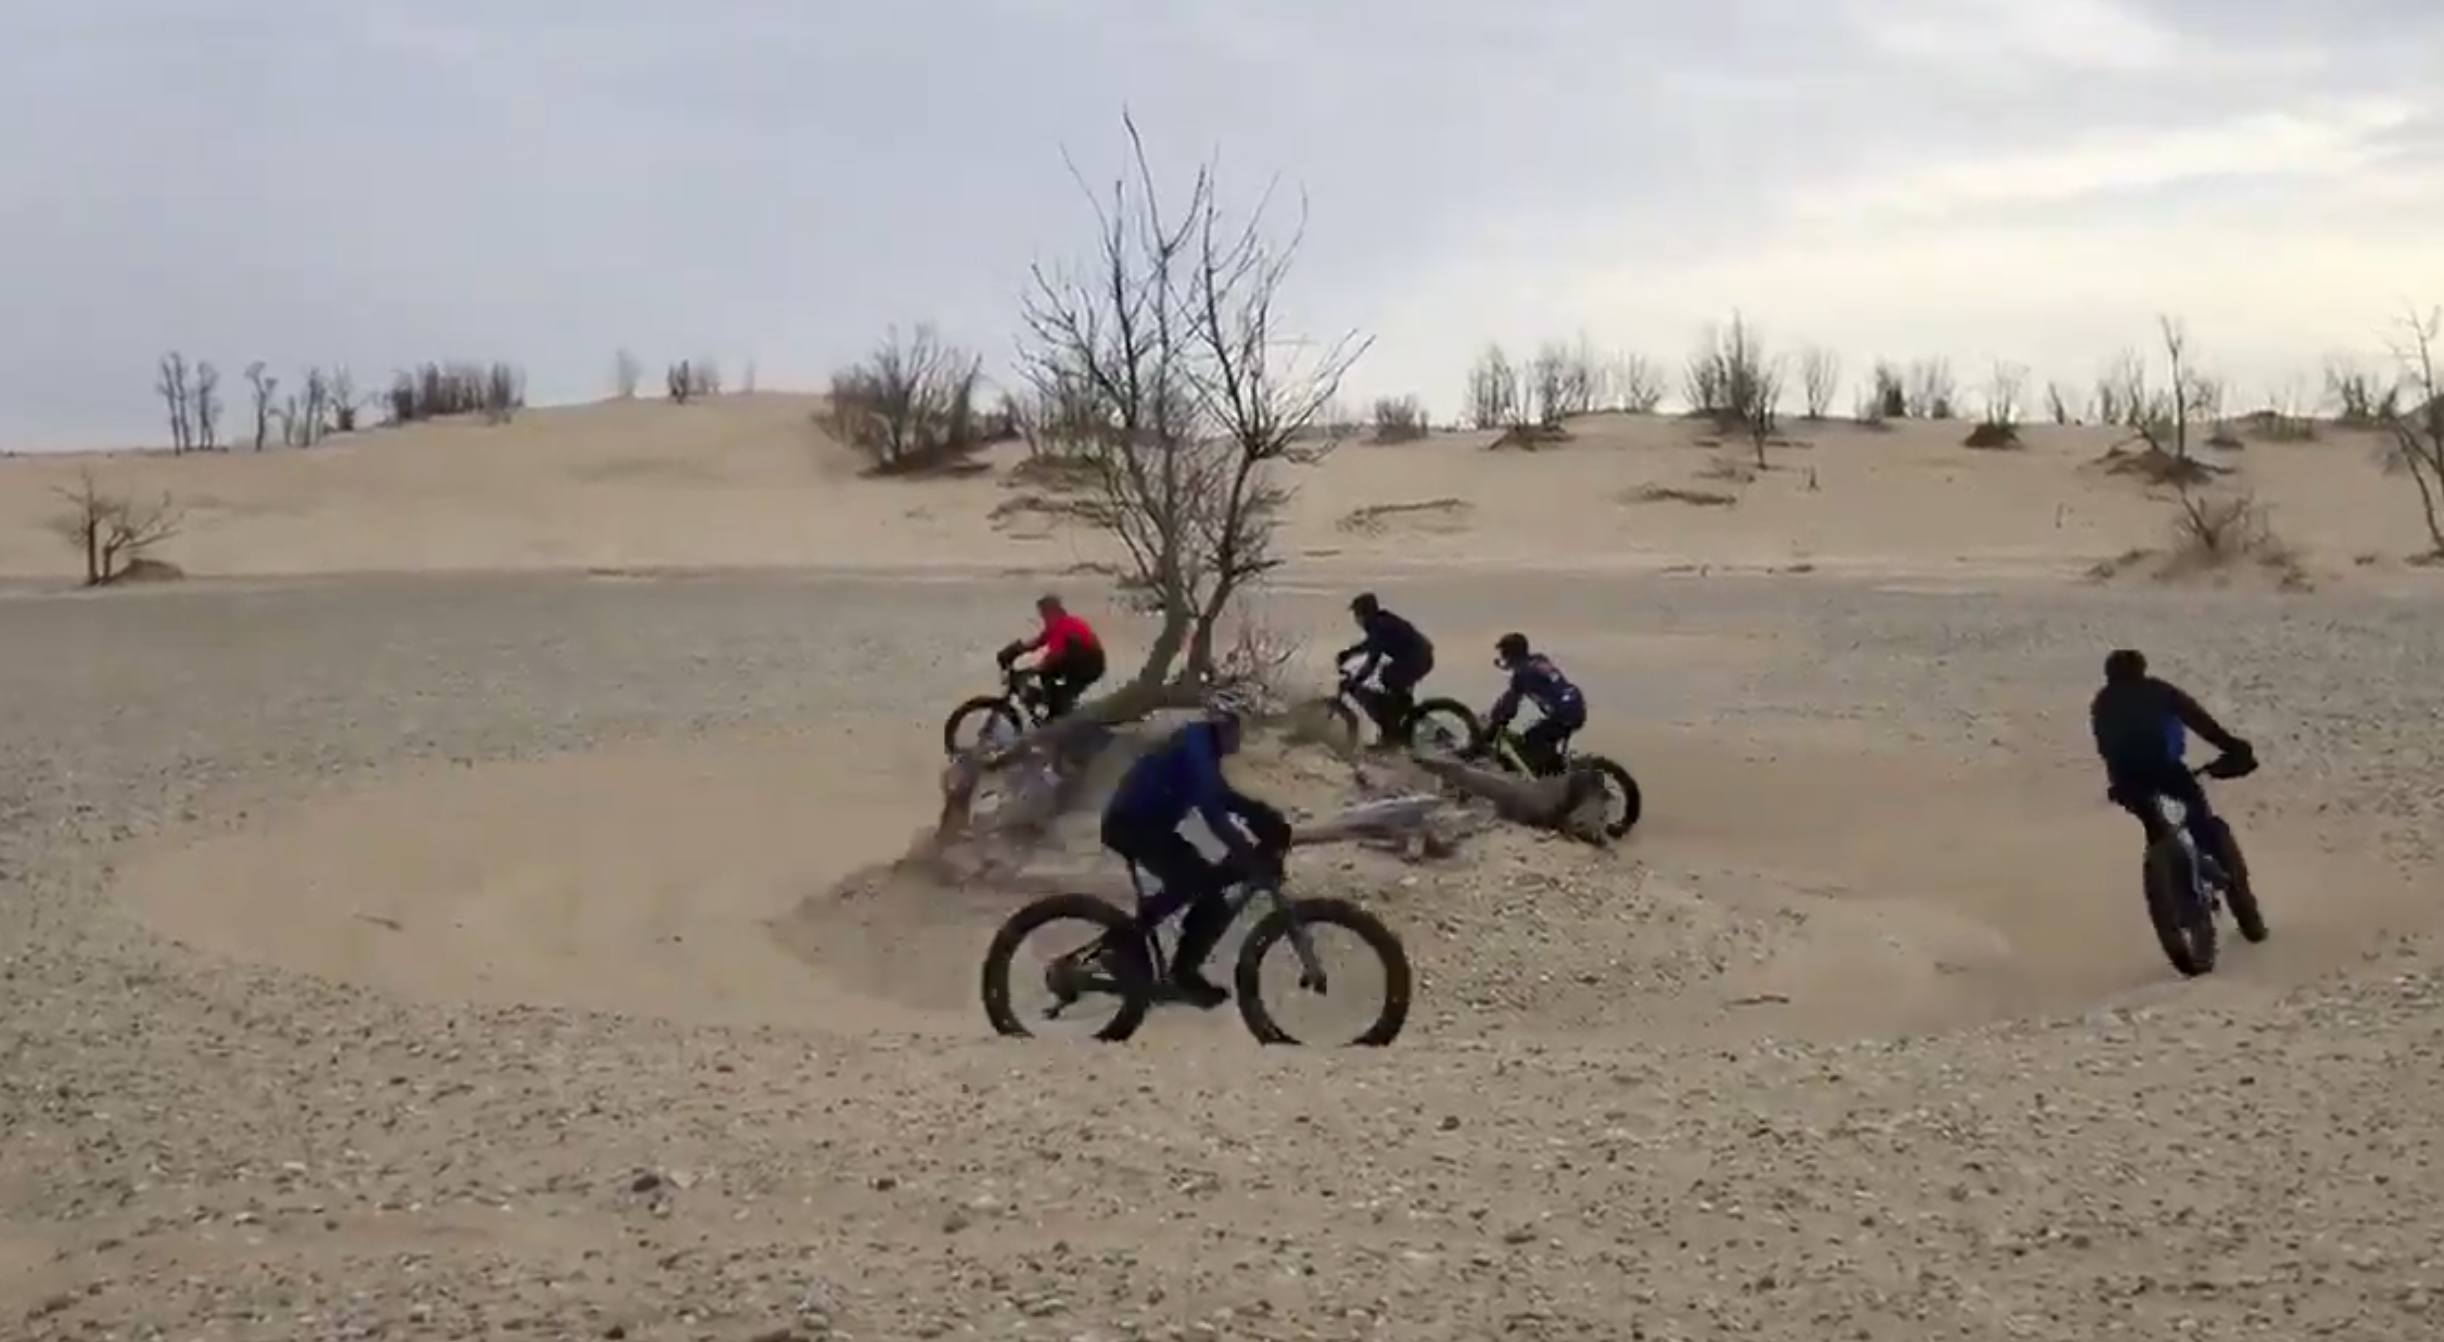 Silver Lake Sand Dunes ride - Saturday morning